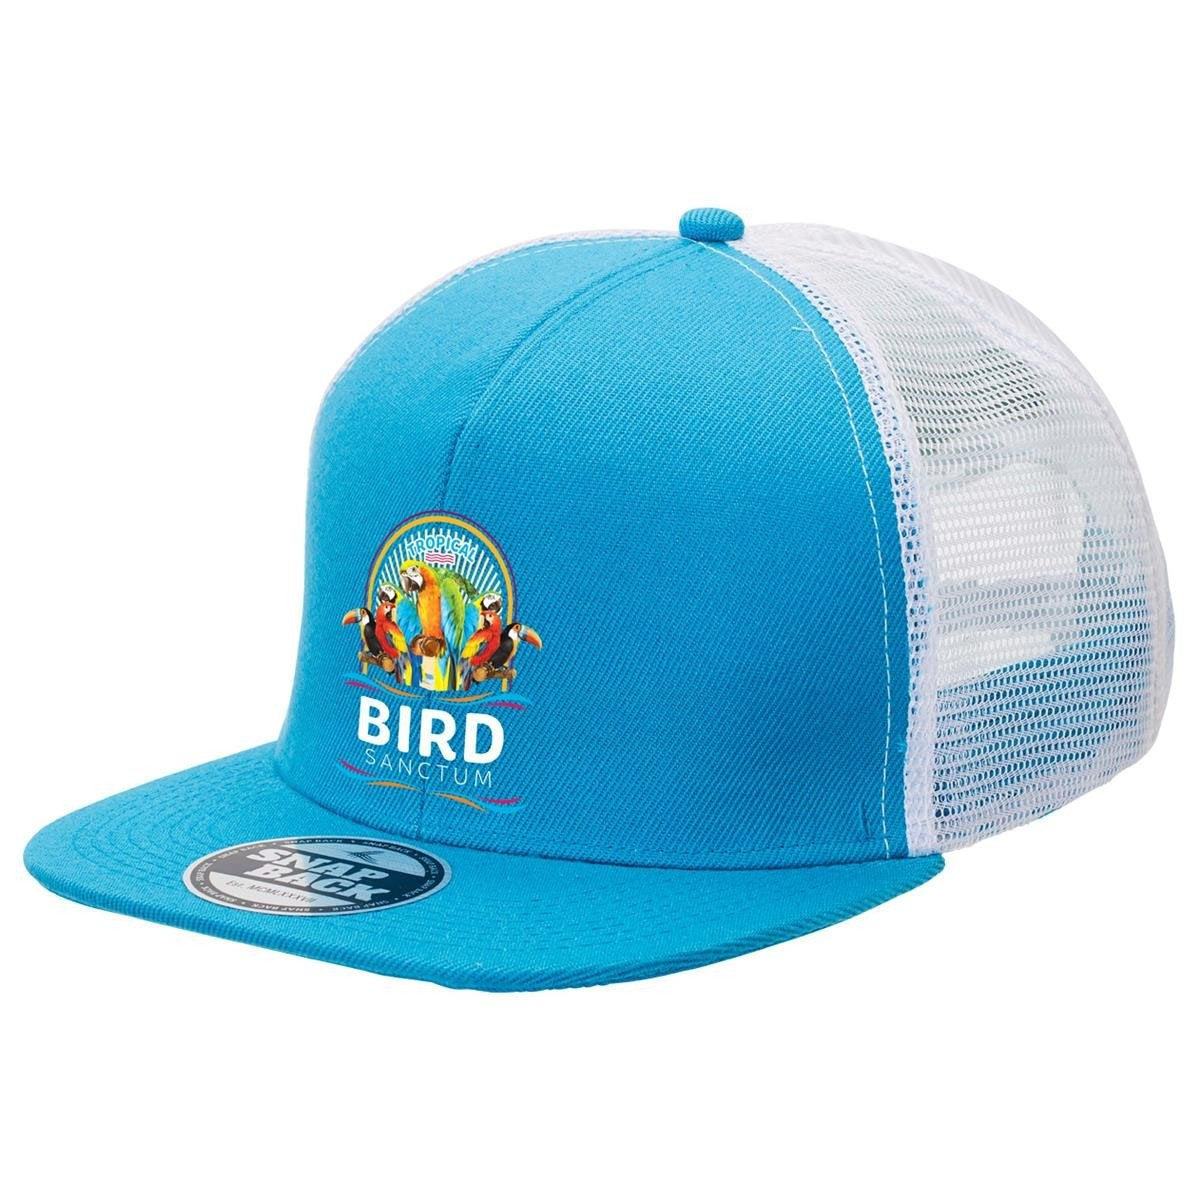 Youth Snapback Trucker Cap